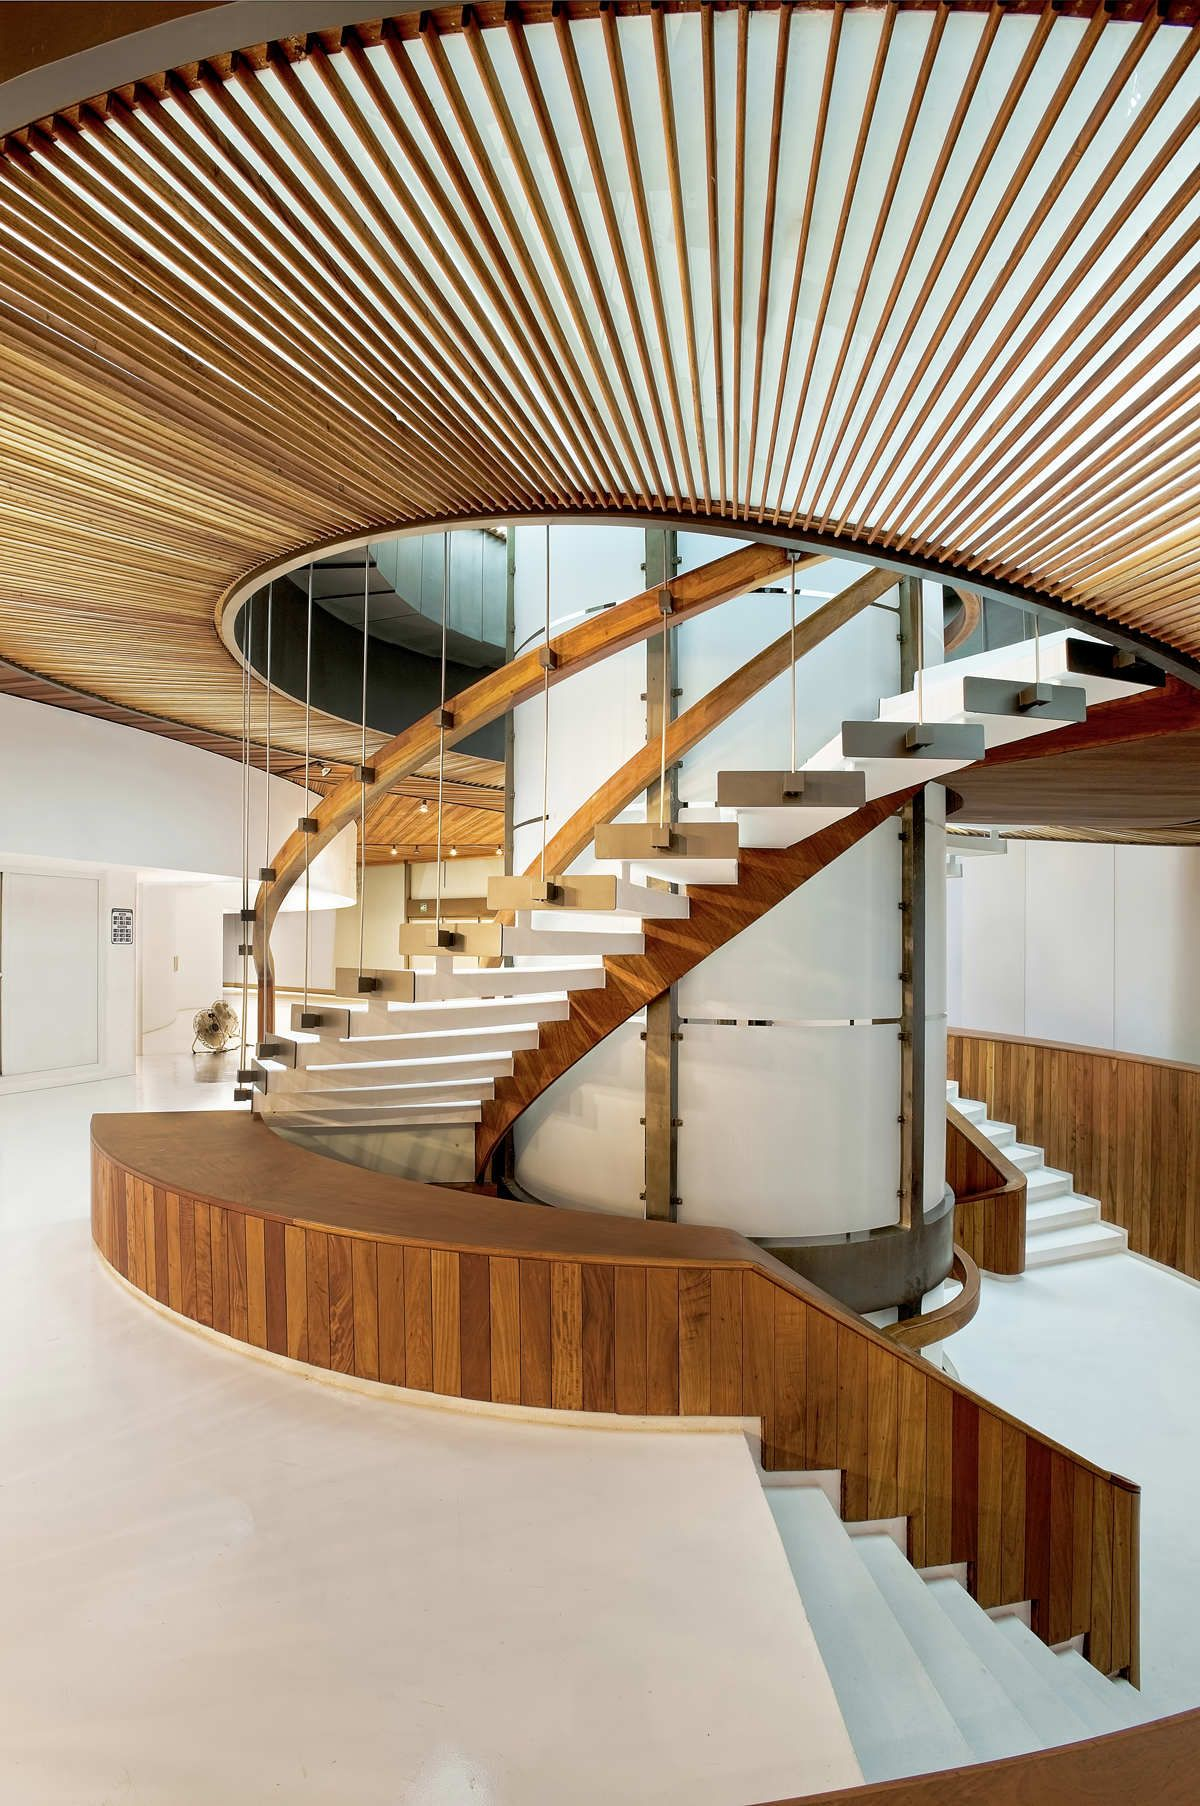 Alternating tread stair revit home design ideas - Evergreen Search Results For Stairs